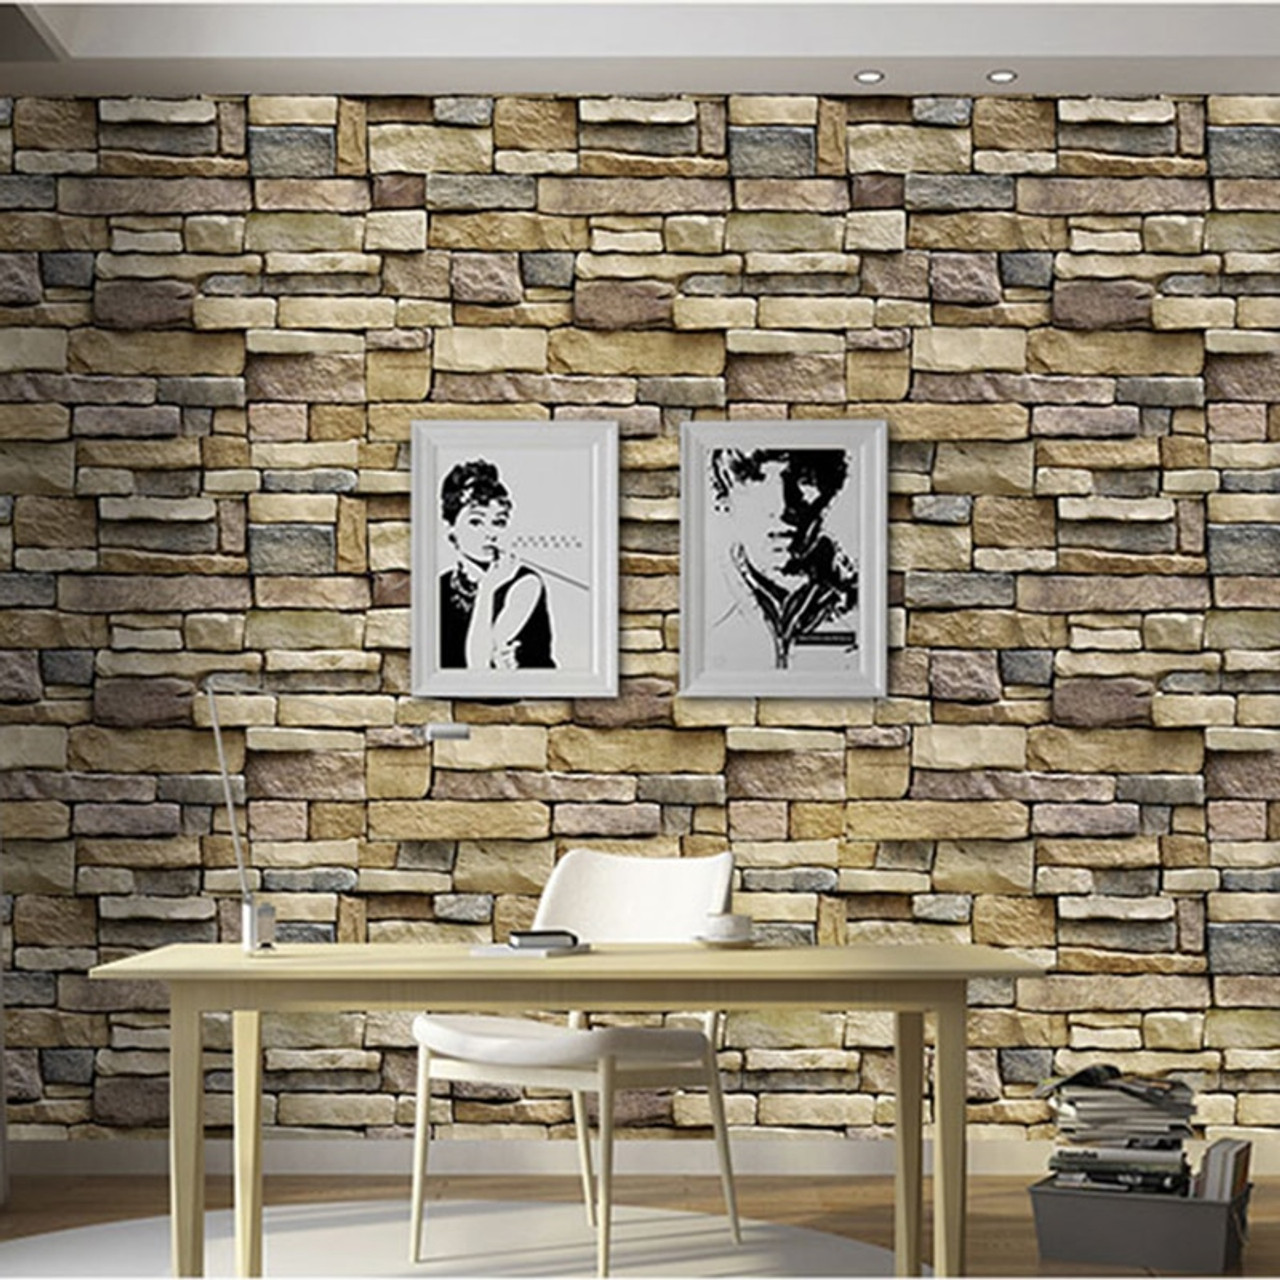 Brick Stone Vinyl Self Adhesive Wallpaper 3d Living Room Restaurant Cafe Creative Decor Pvc Waterproof Wall Sticker Wall Papers